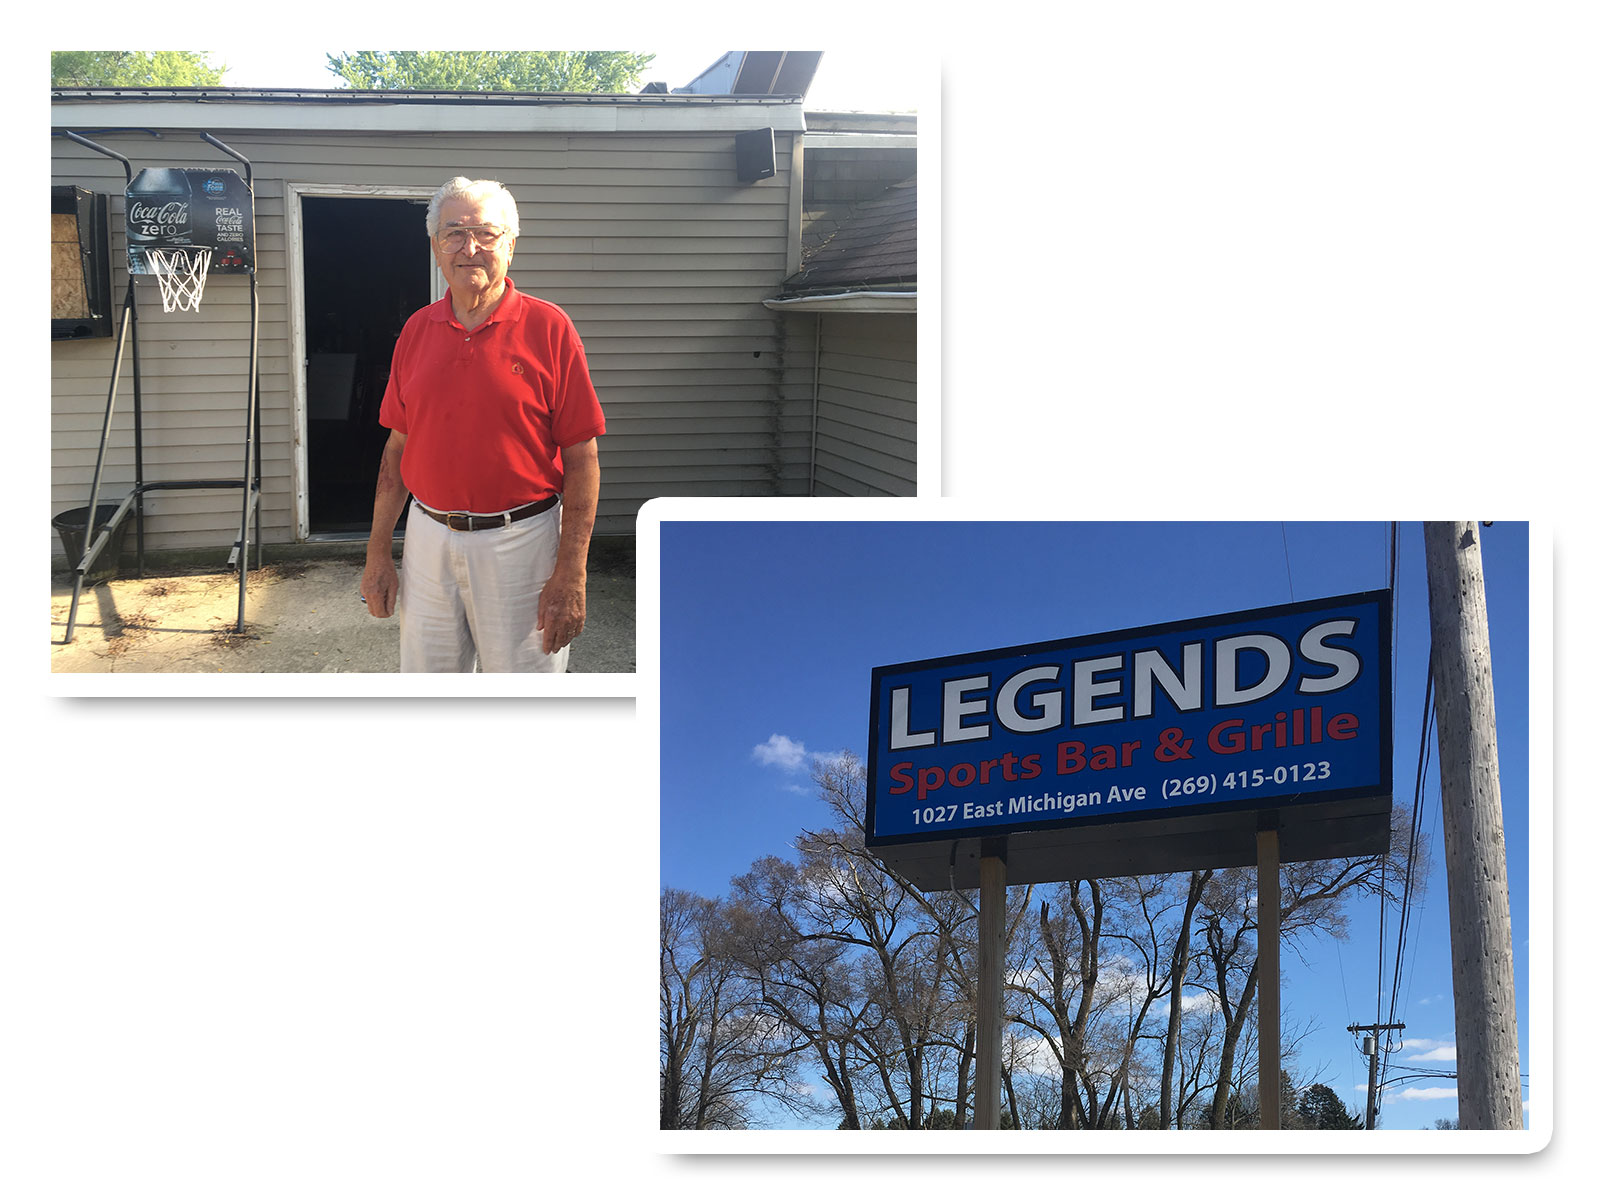 Gene Mitchell - Mitchells Tavern becomes Legends Bar & Grille